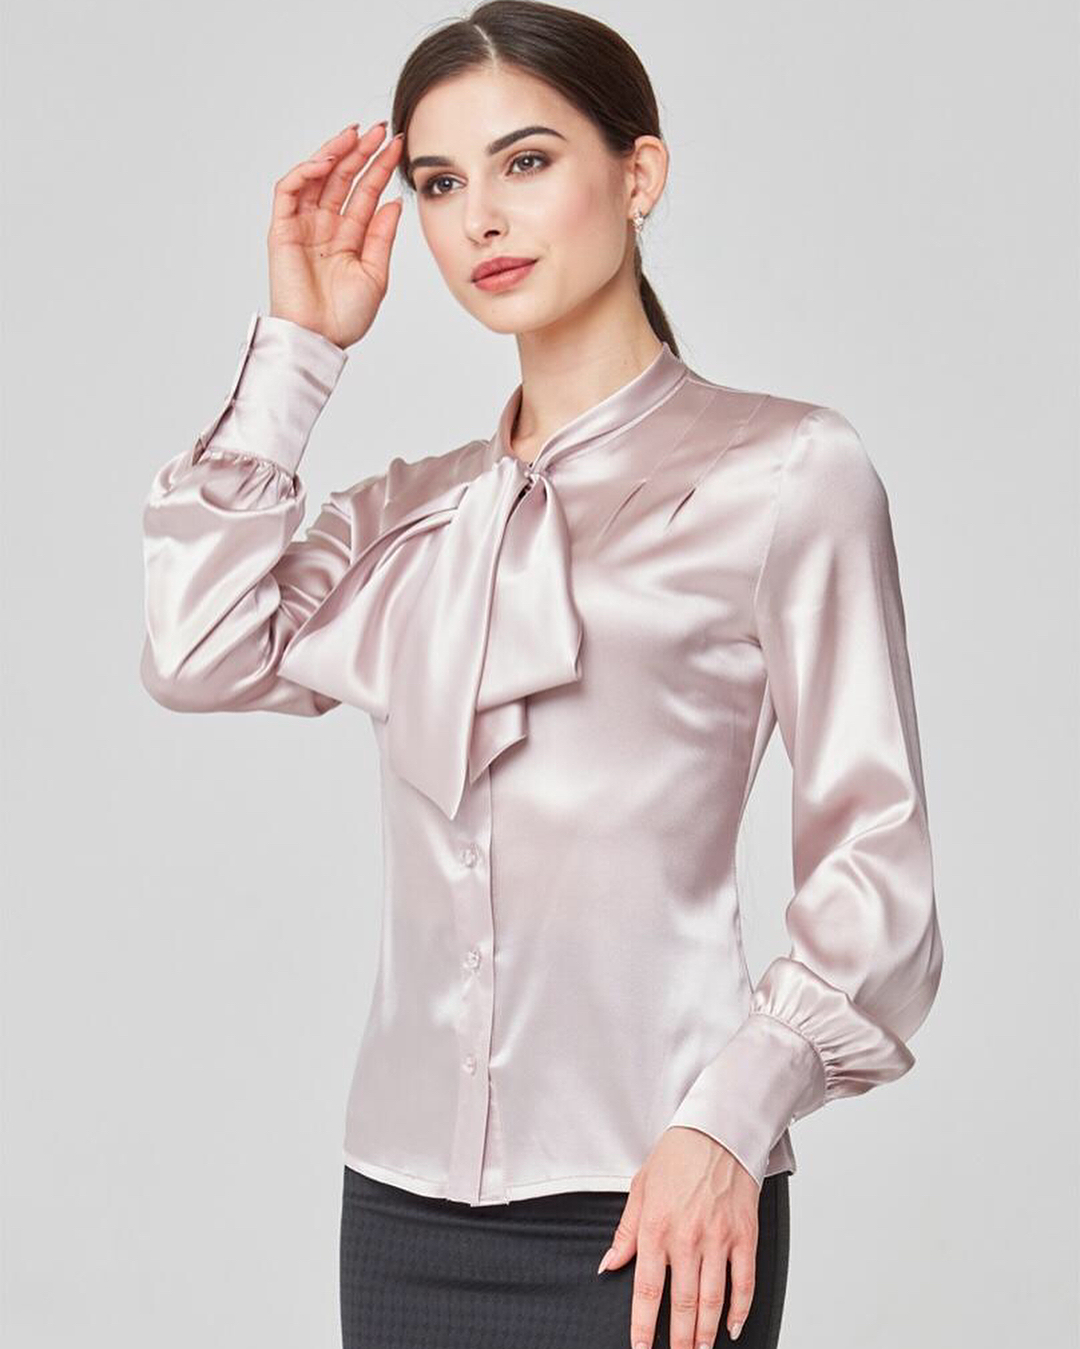 silk blouse for business trips